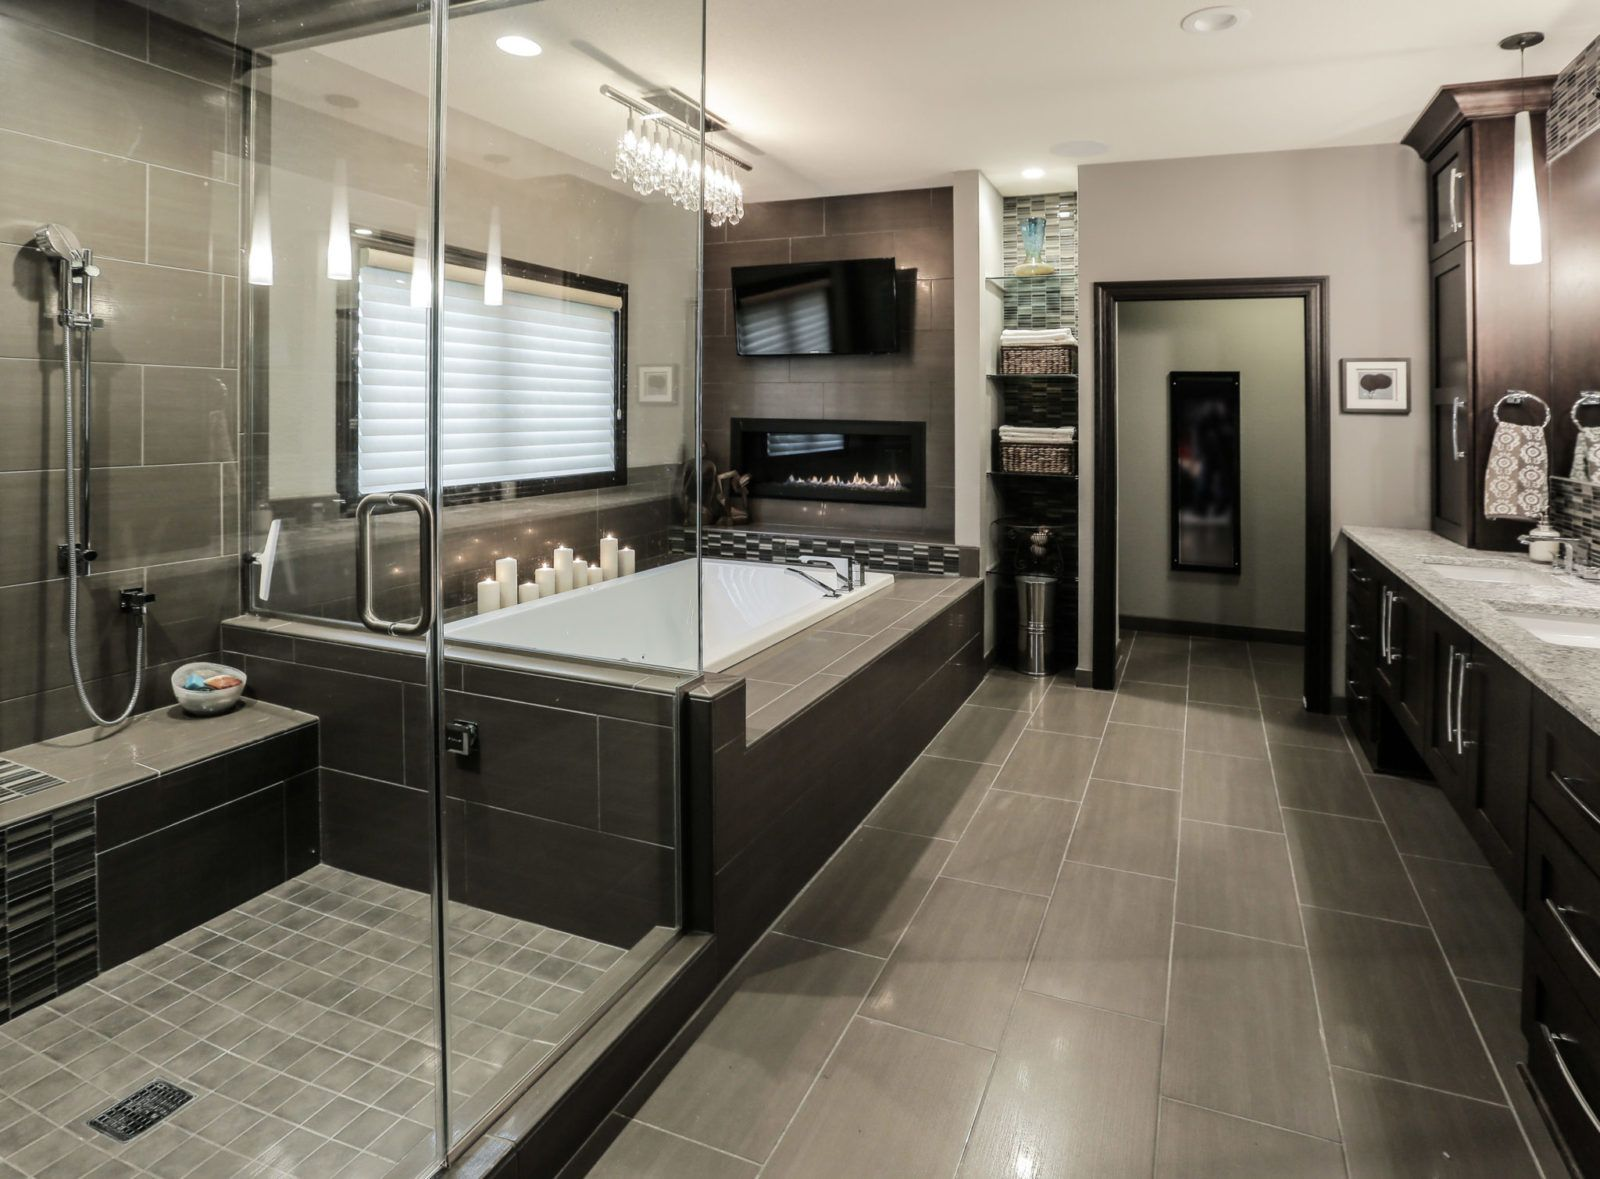 Photo of KOHLER toilets, faucets, sinks, showers and other kitchen and bathroom products